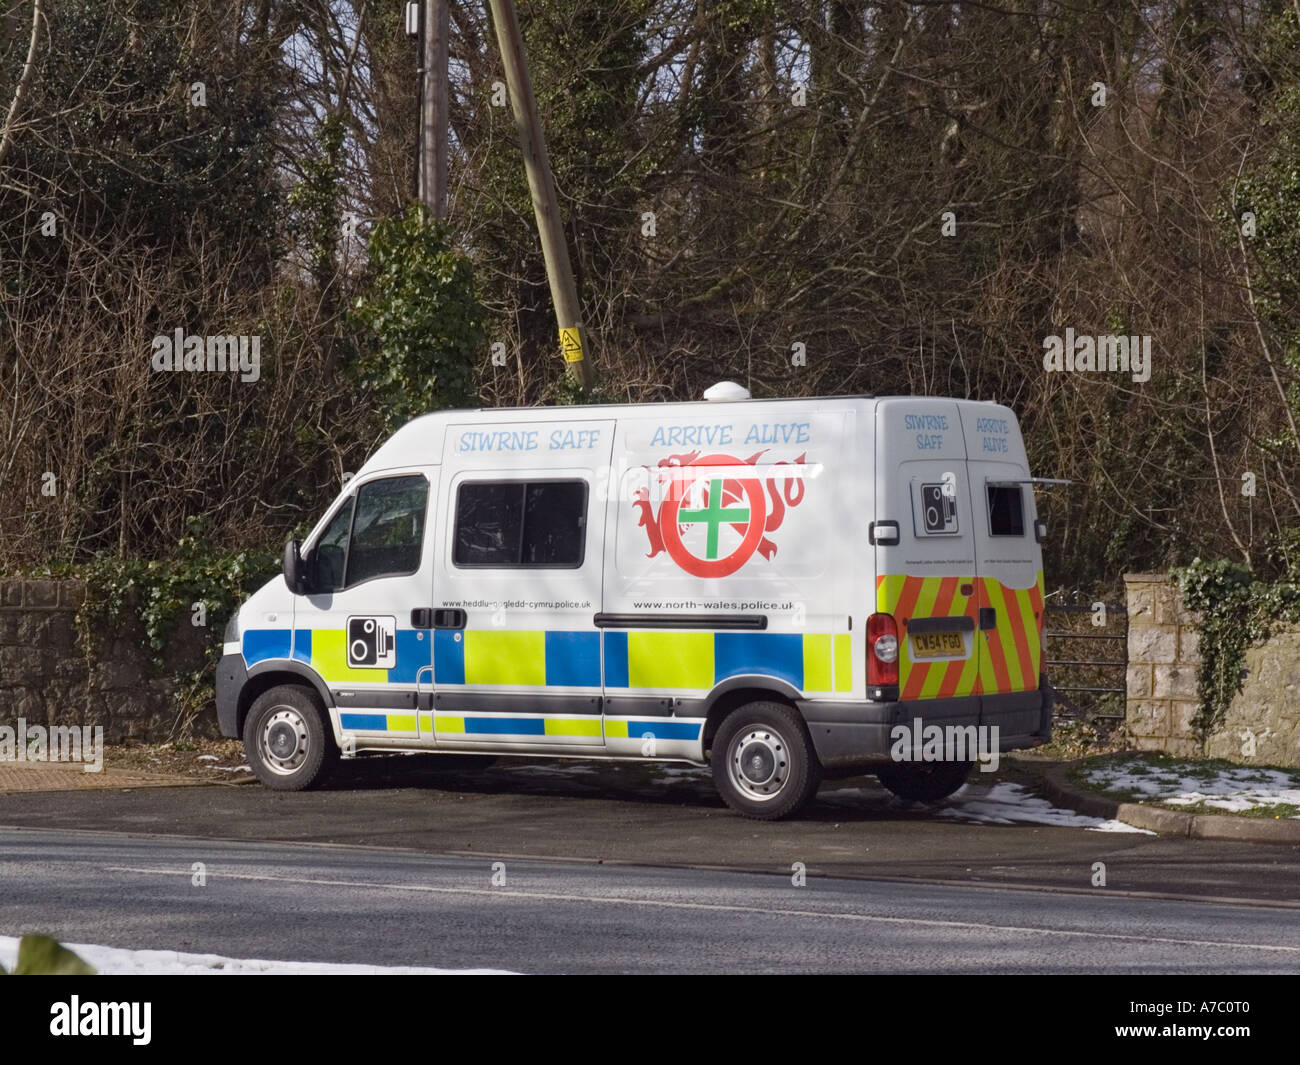 http://c8.alamy.com/comp/A7C0T0/police-mobile-speed-camera-vehicle-parked-beside-road-in-30-mph-speed-A7C0T0.jpg